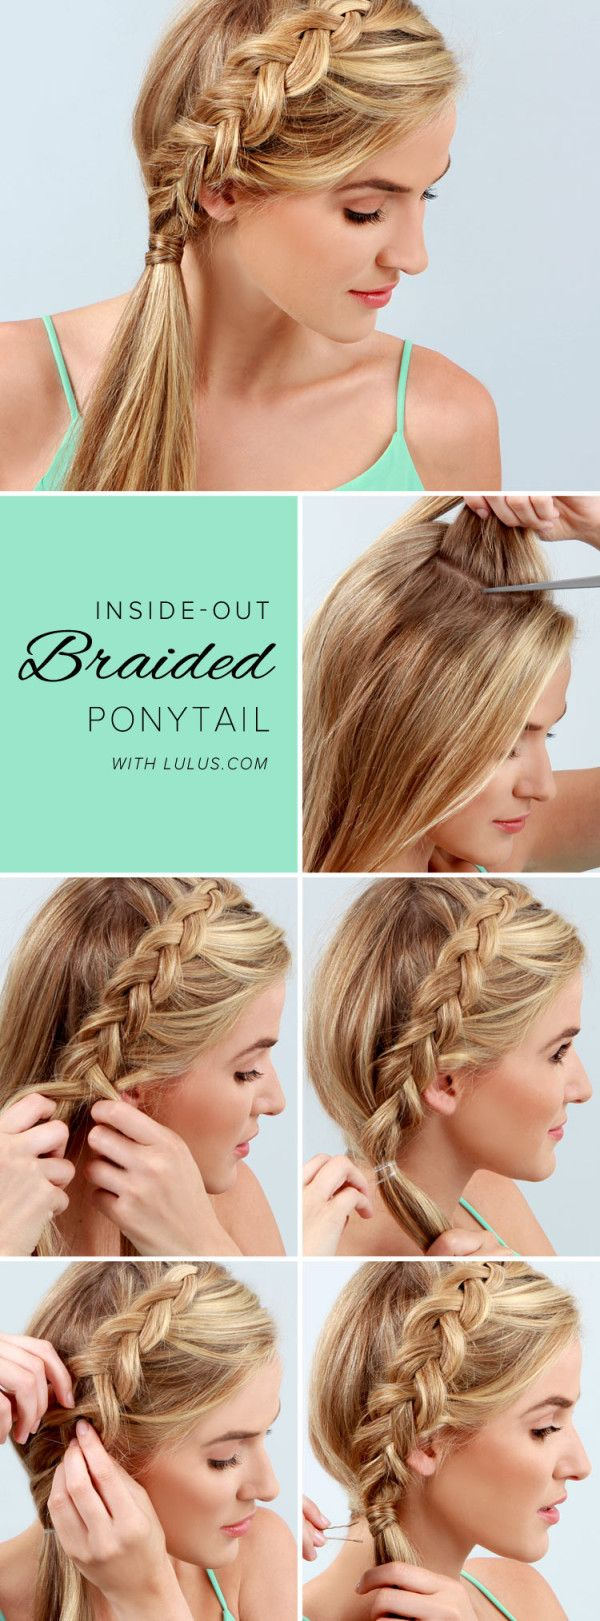 Groovy 1000 Ideas About Lazy Girl Hairstyles On Pinterest Girl Short Hairstyles For Black Women Fulllsitofus